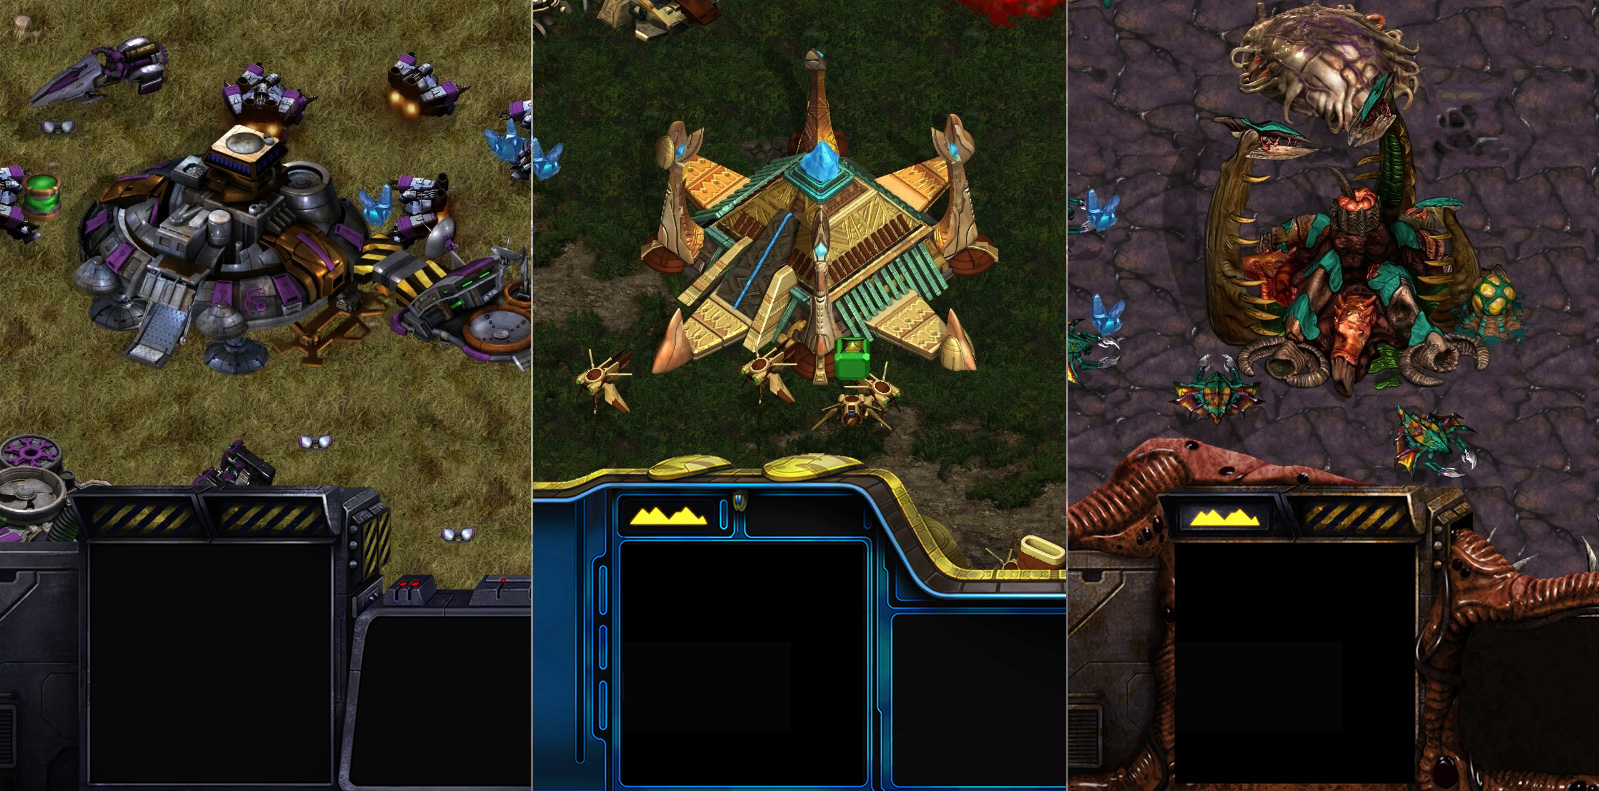 Remastering StarCraft's Art